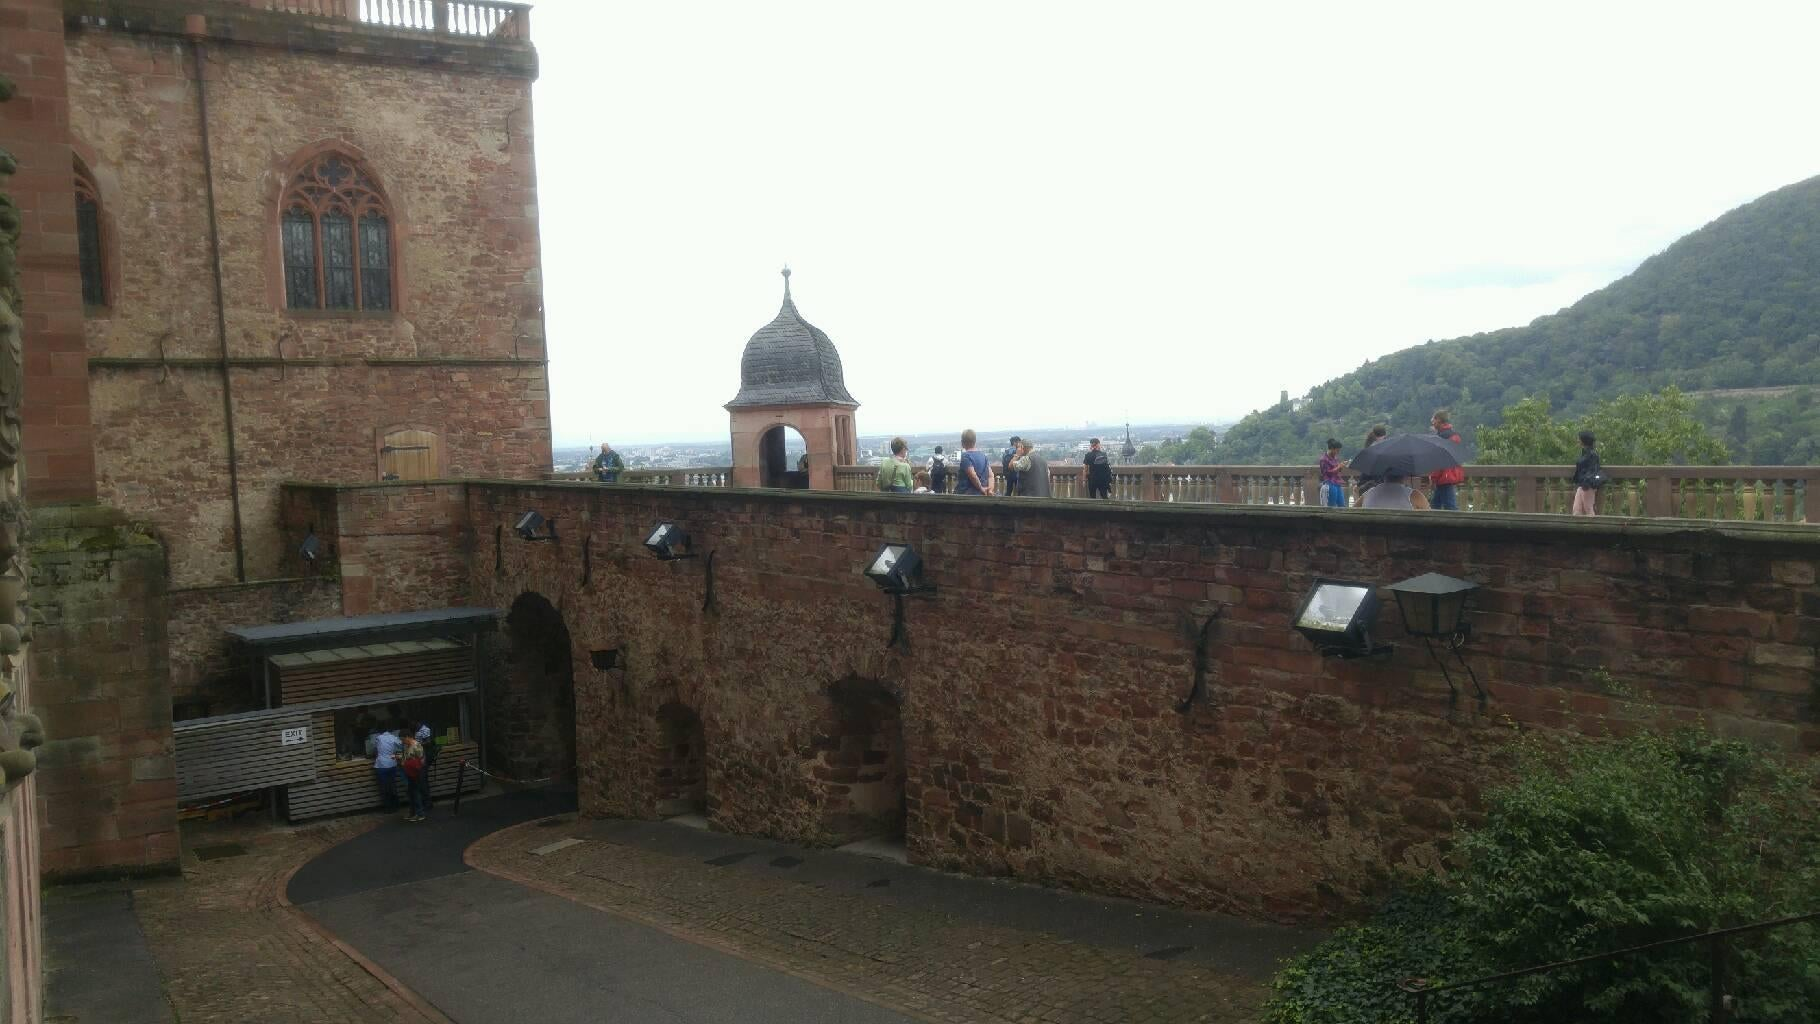 Pared en Castillo de Heidelberg